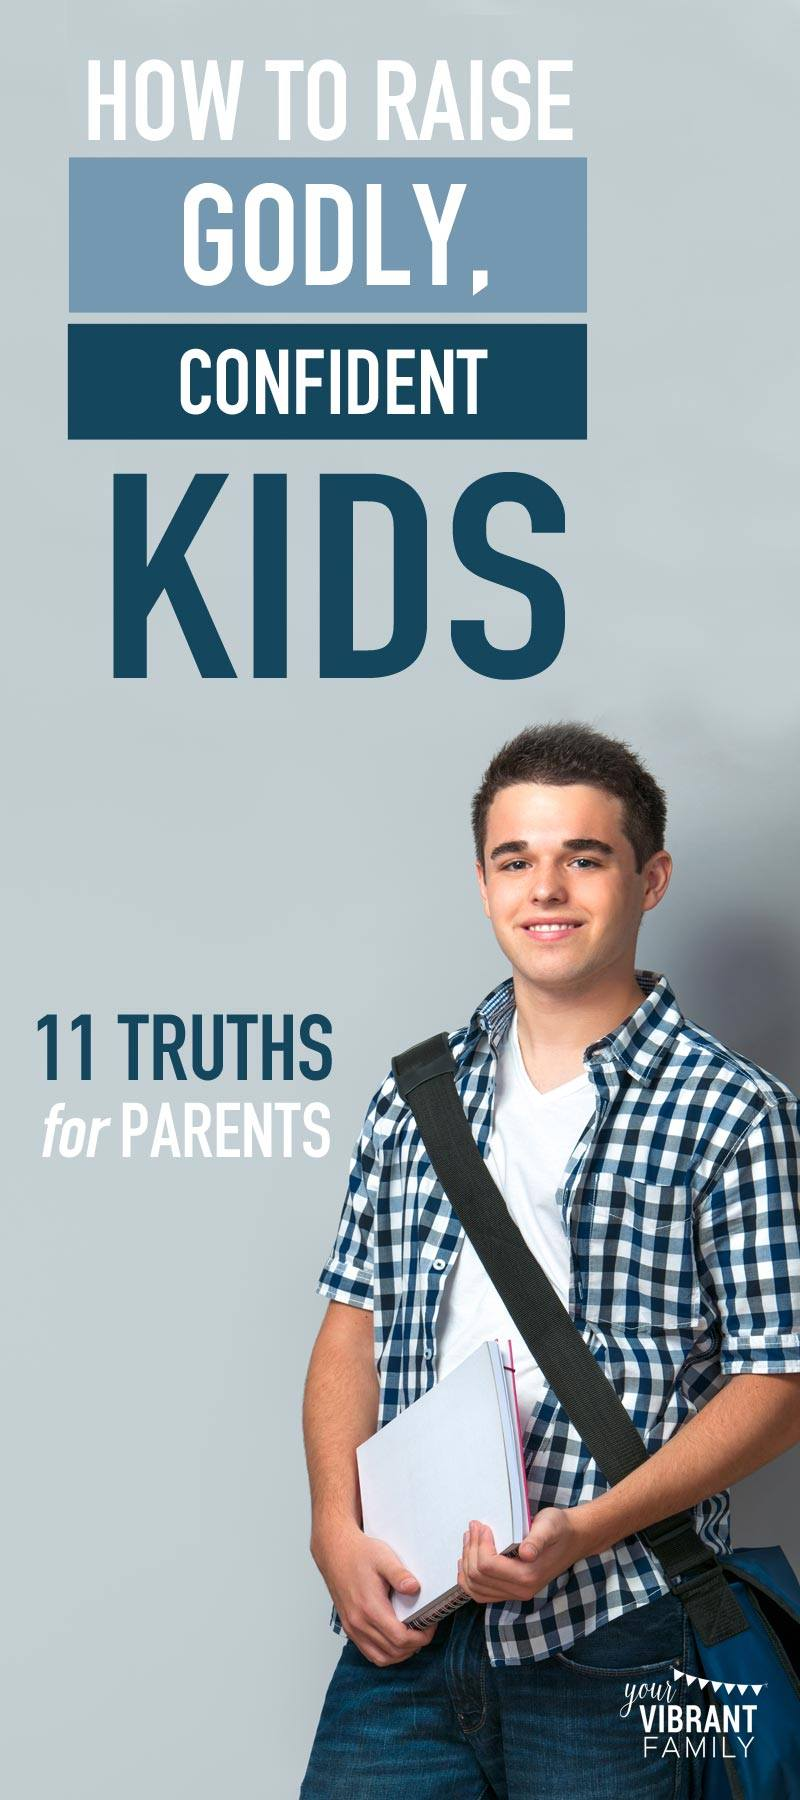 As Christian parents, we want to raise confident kids who make the right choices. But is self-esteem the answer? This post may surprise you…